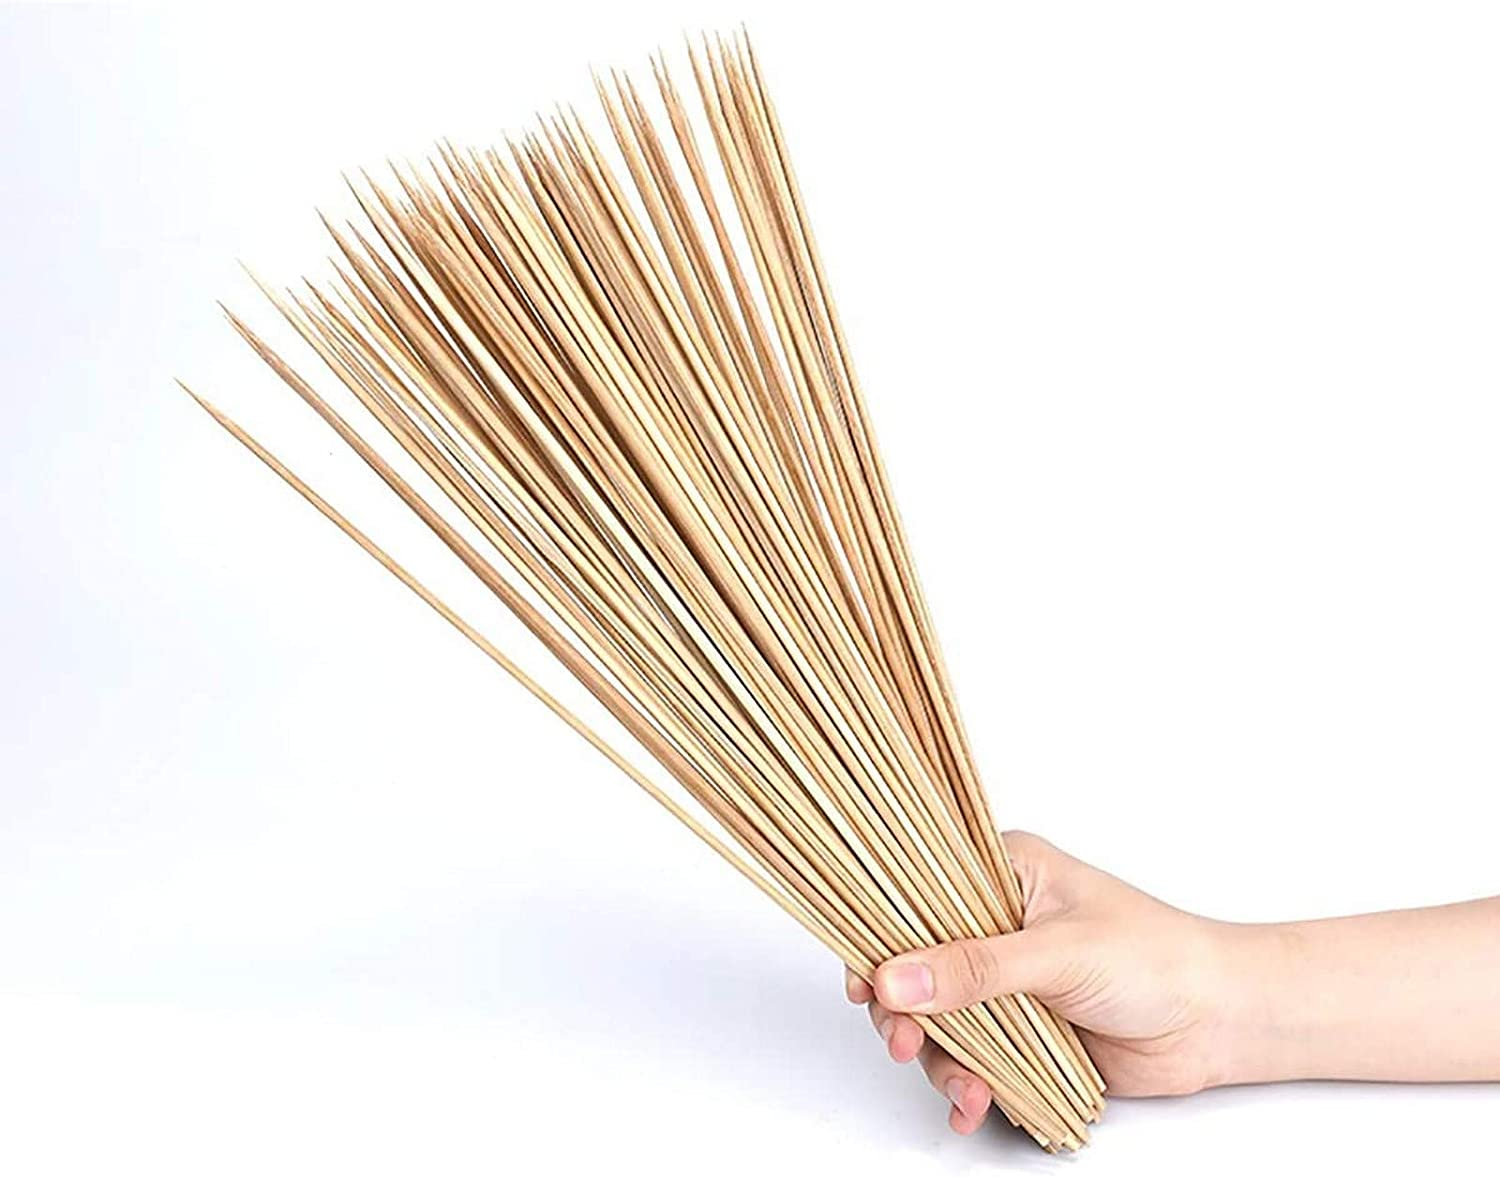 YYAI-HHJU Bamboo Skewers Natural Max 82% OFF BBQ Sticks for online shop Wooden